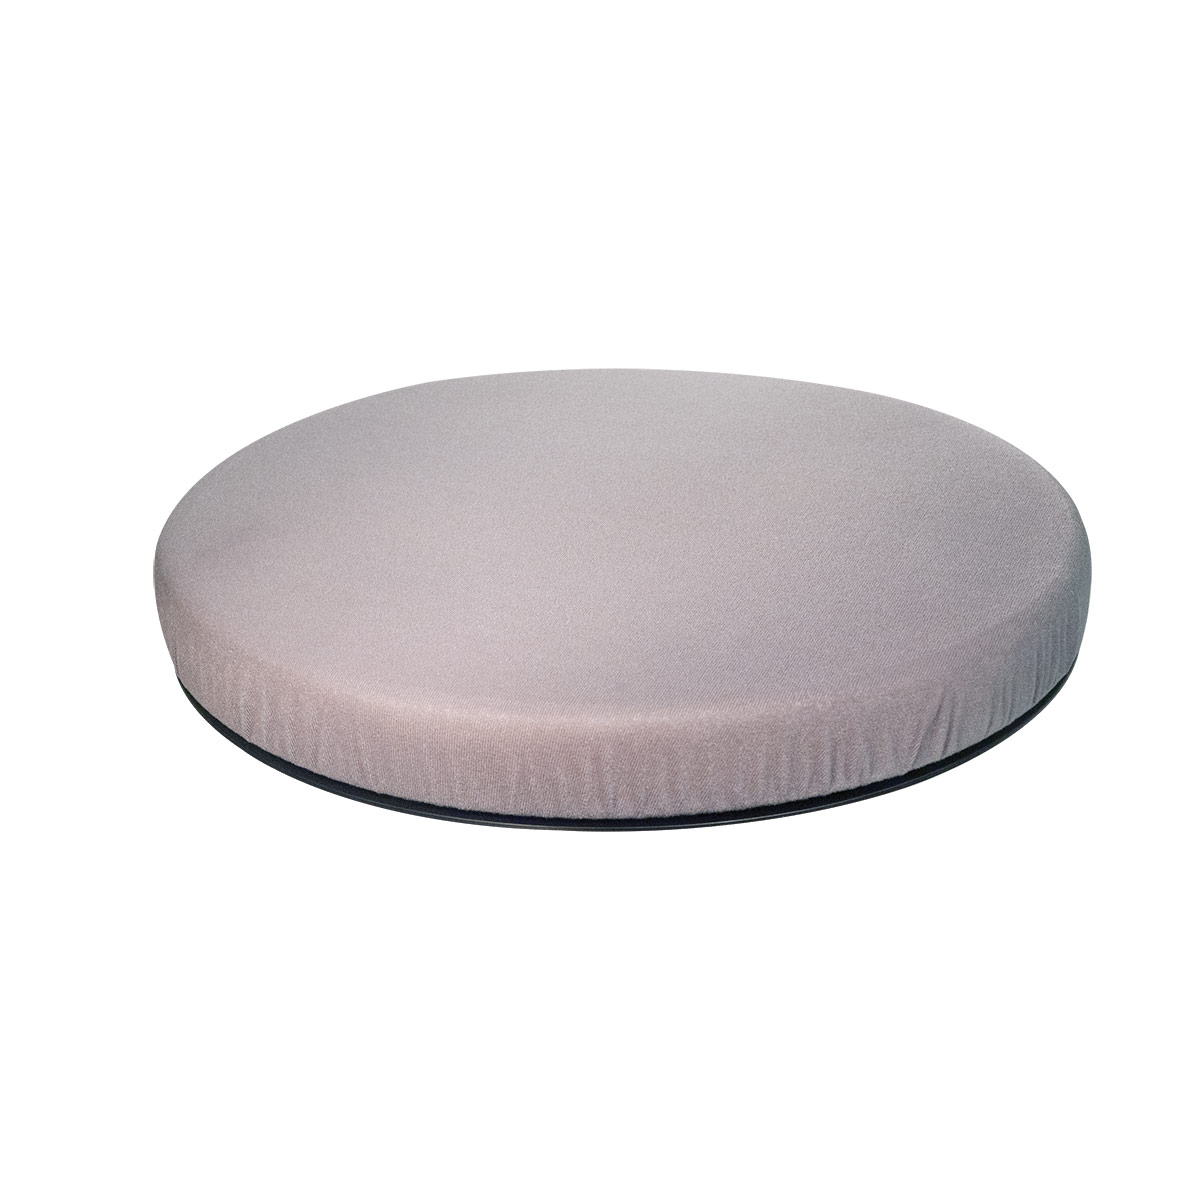 Swivel Seat Cushion - Gray